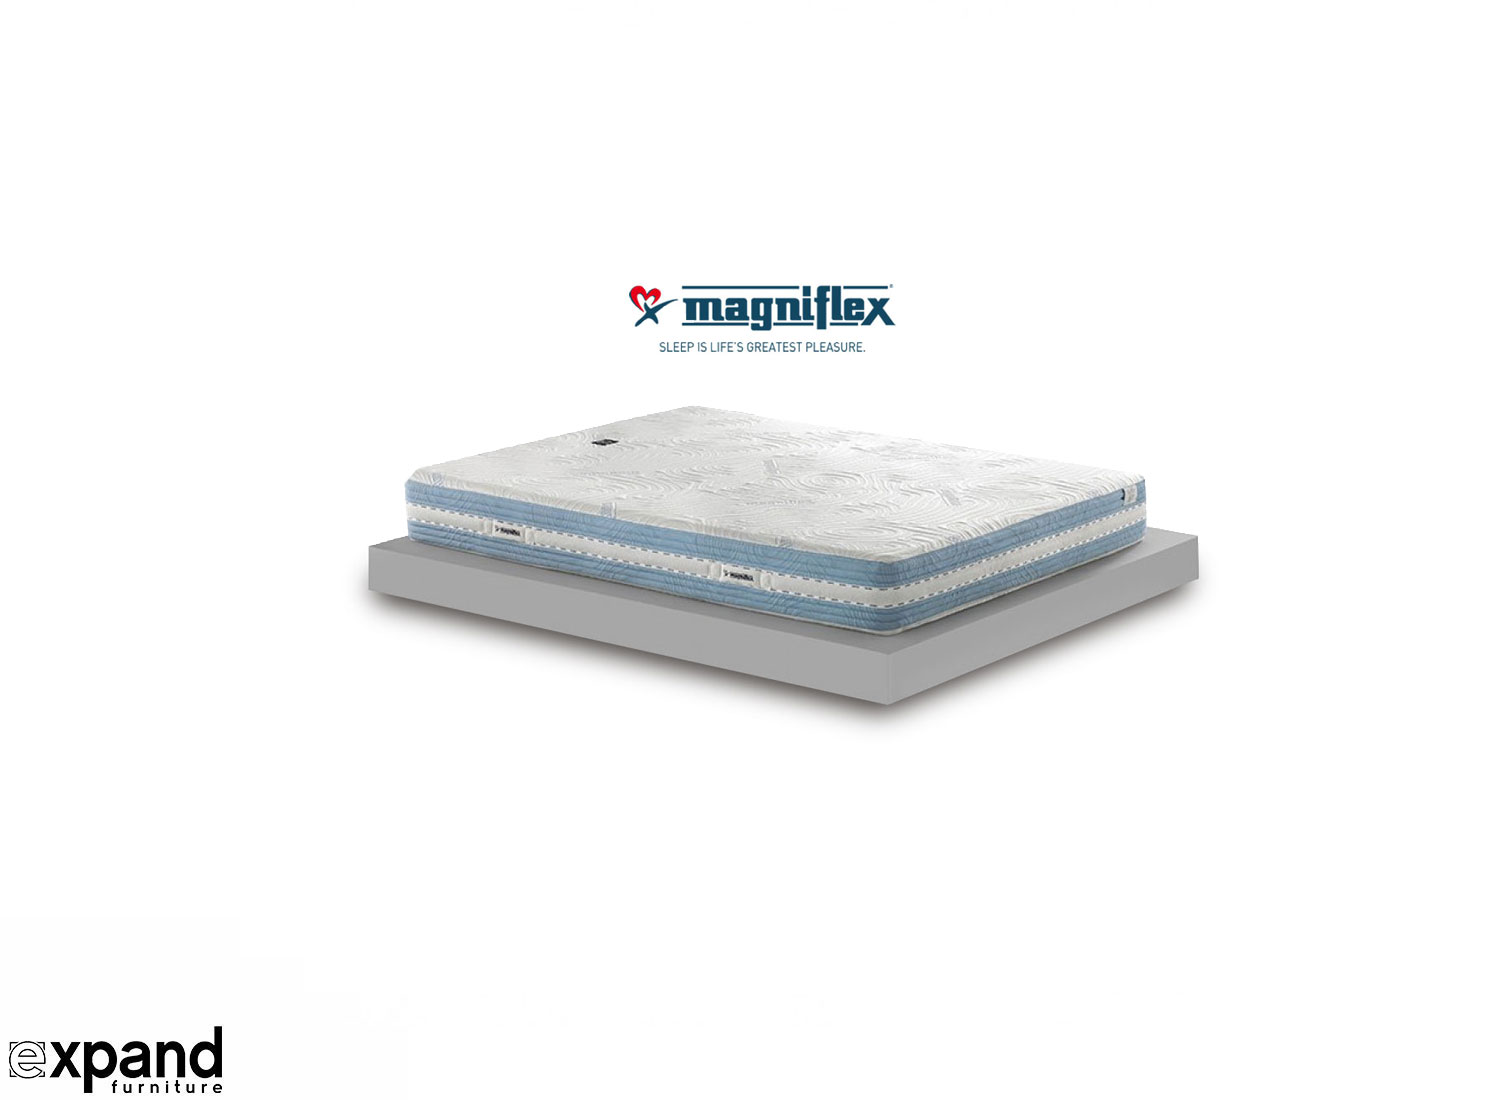 Mattress In Canada Magniflex Magnigel Dual 9 Memory Foam Mattress